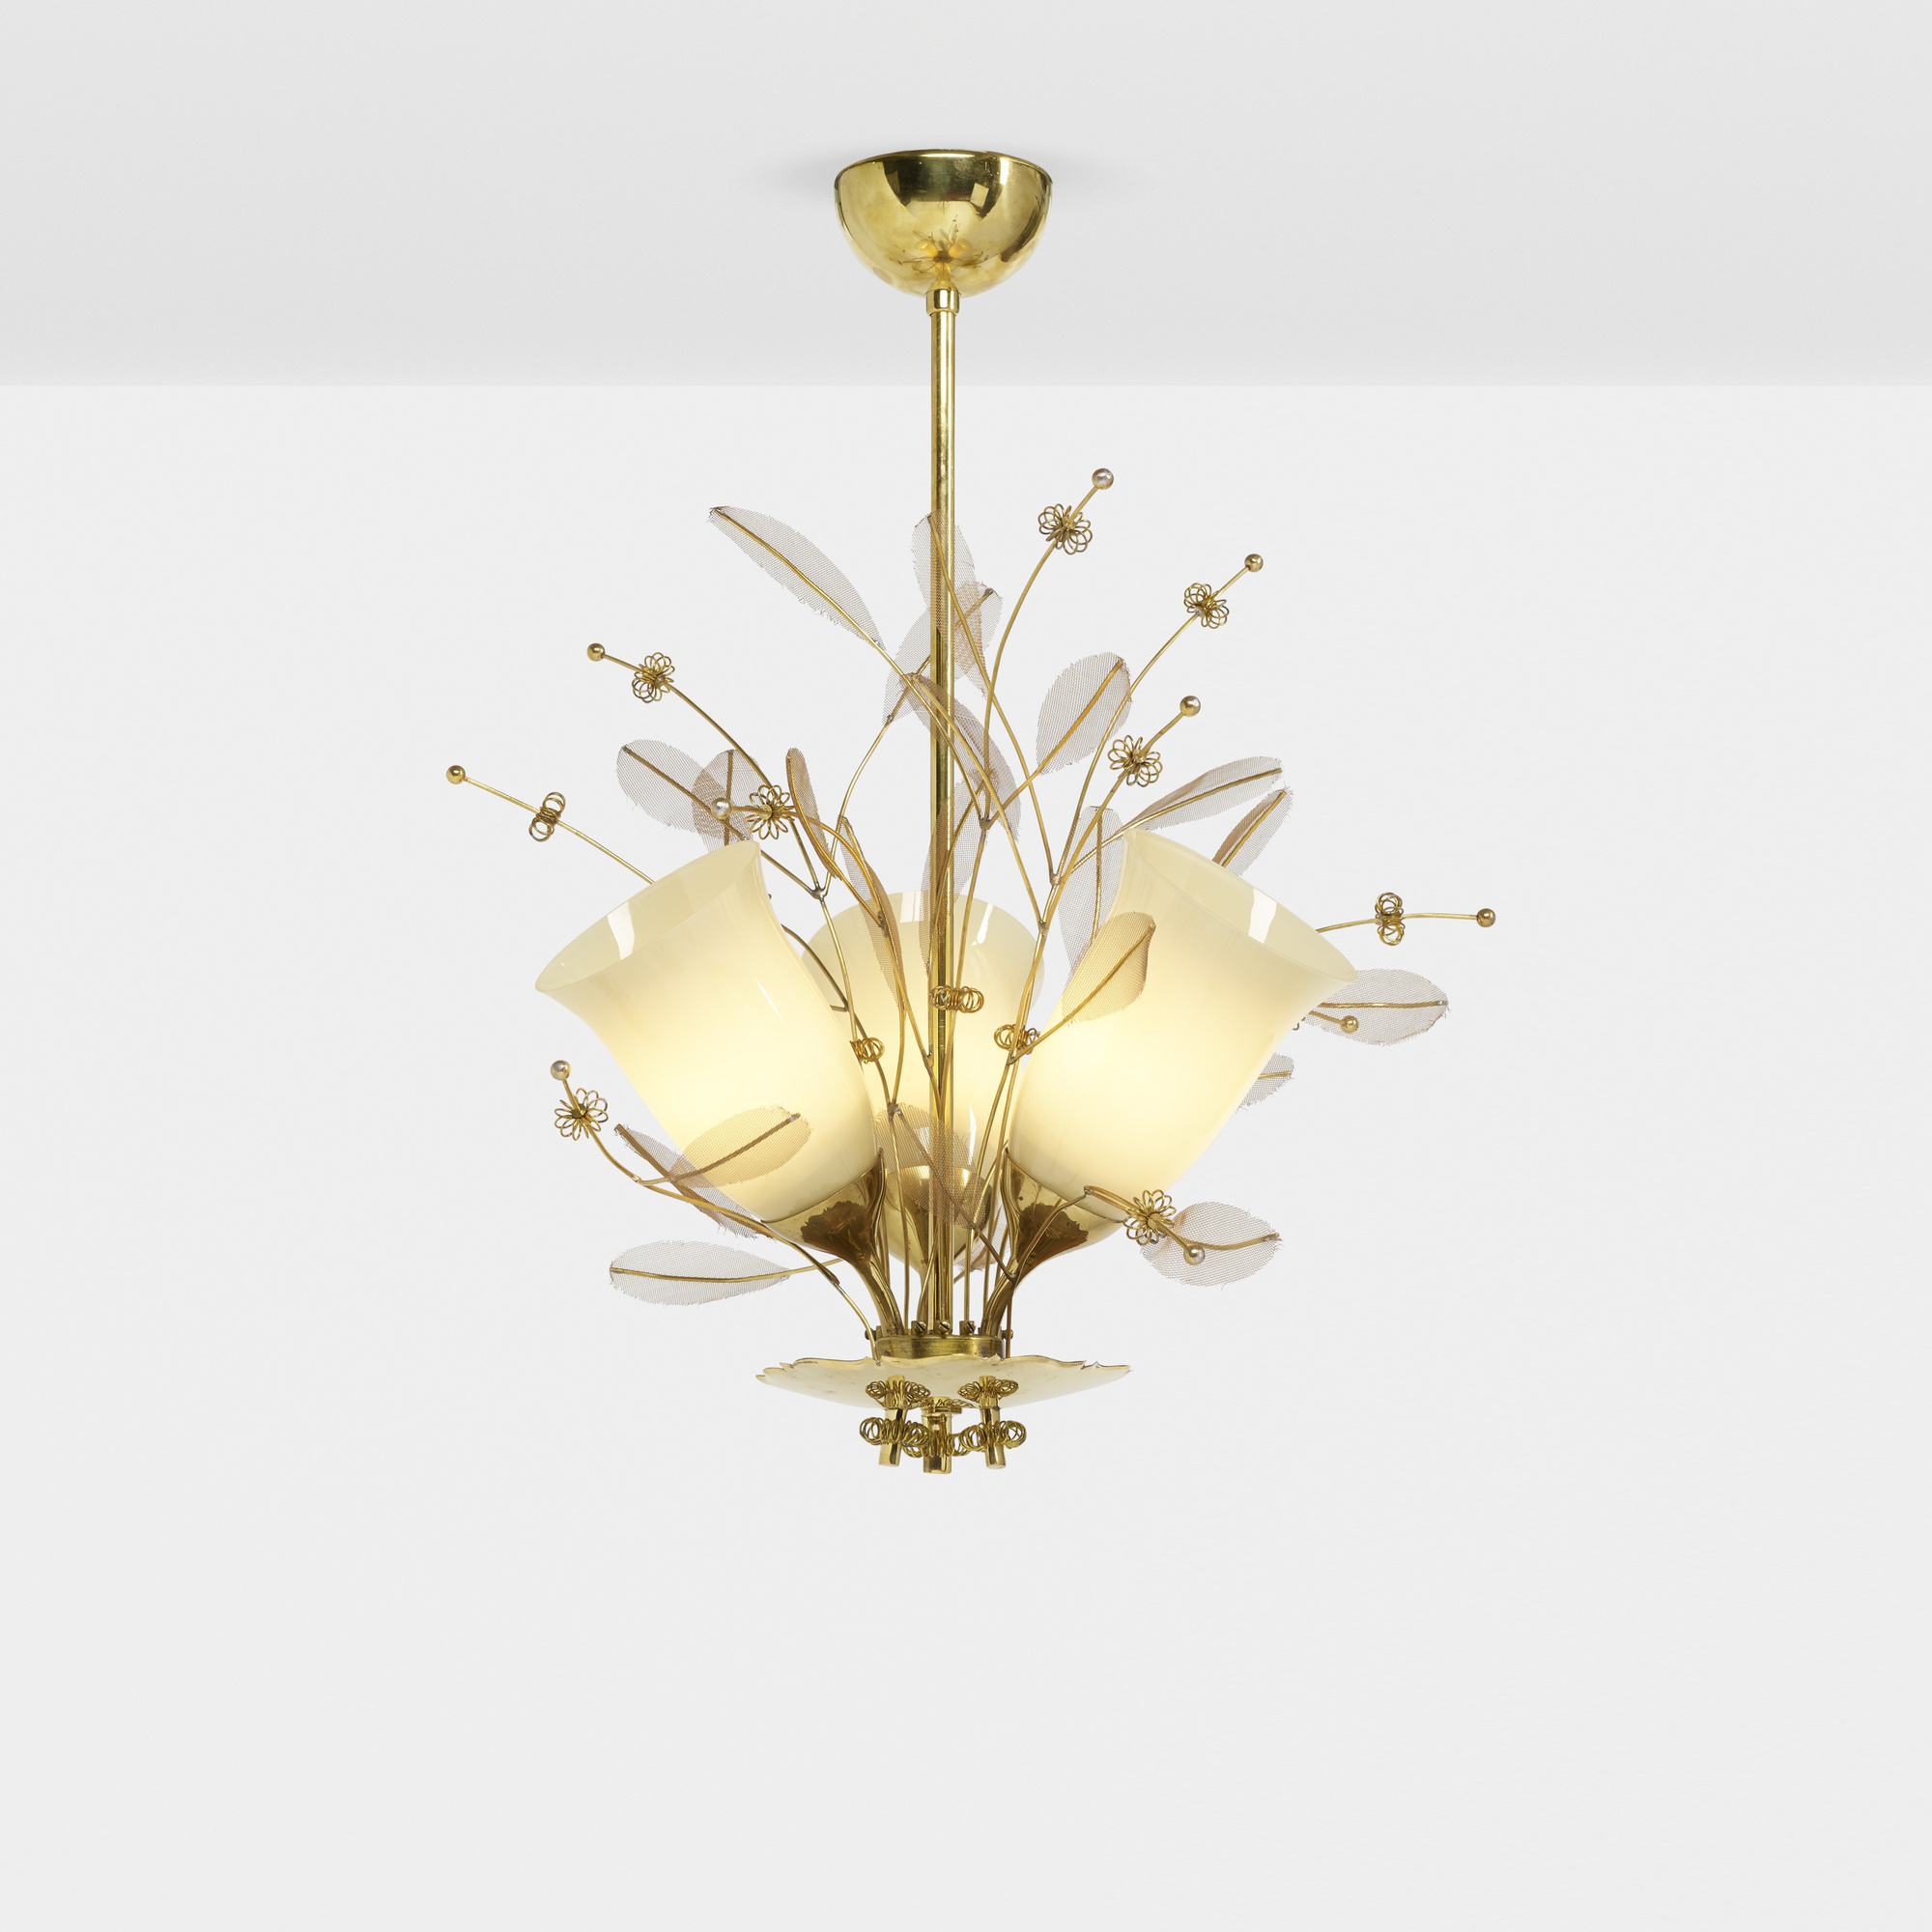 252: Paavo Tynell / chandelier, model 9029/3 (1 of 2)